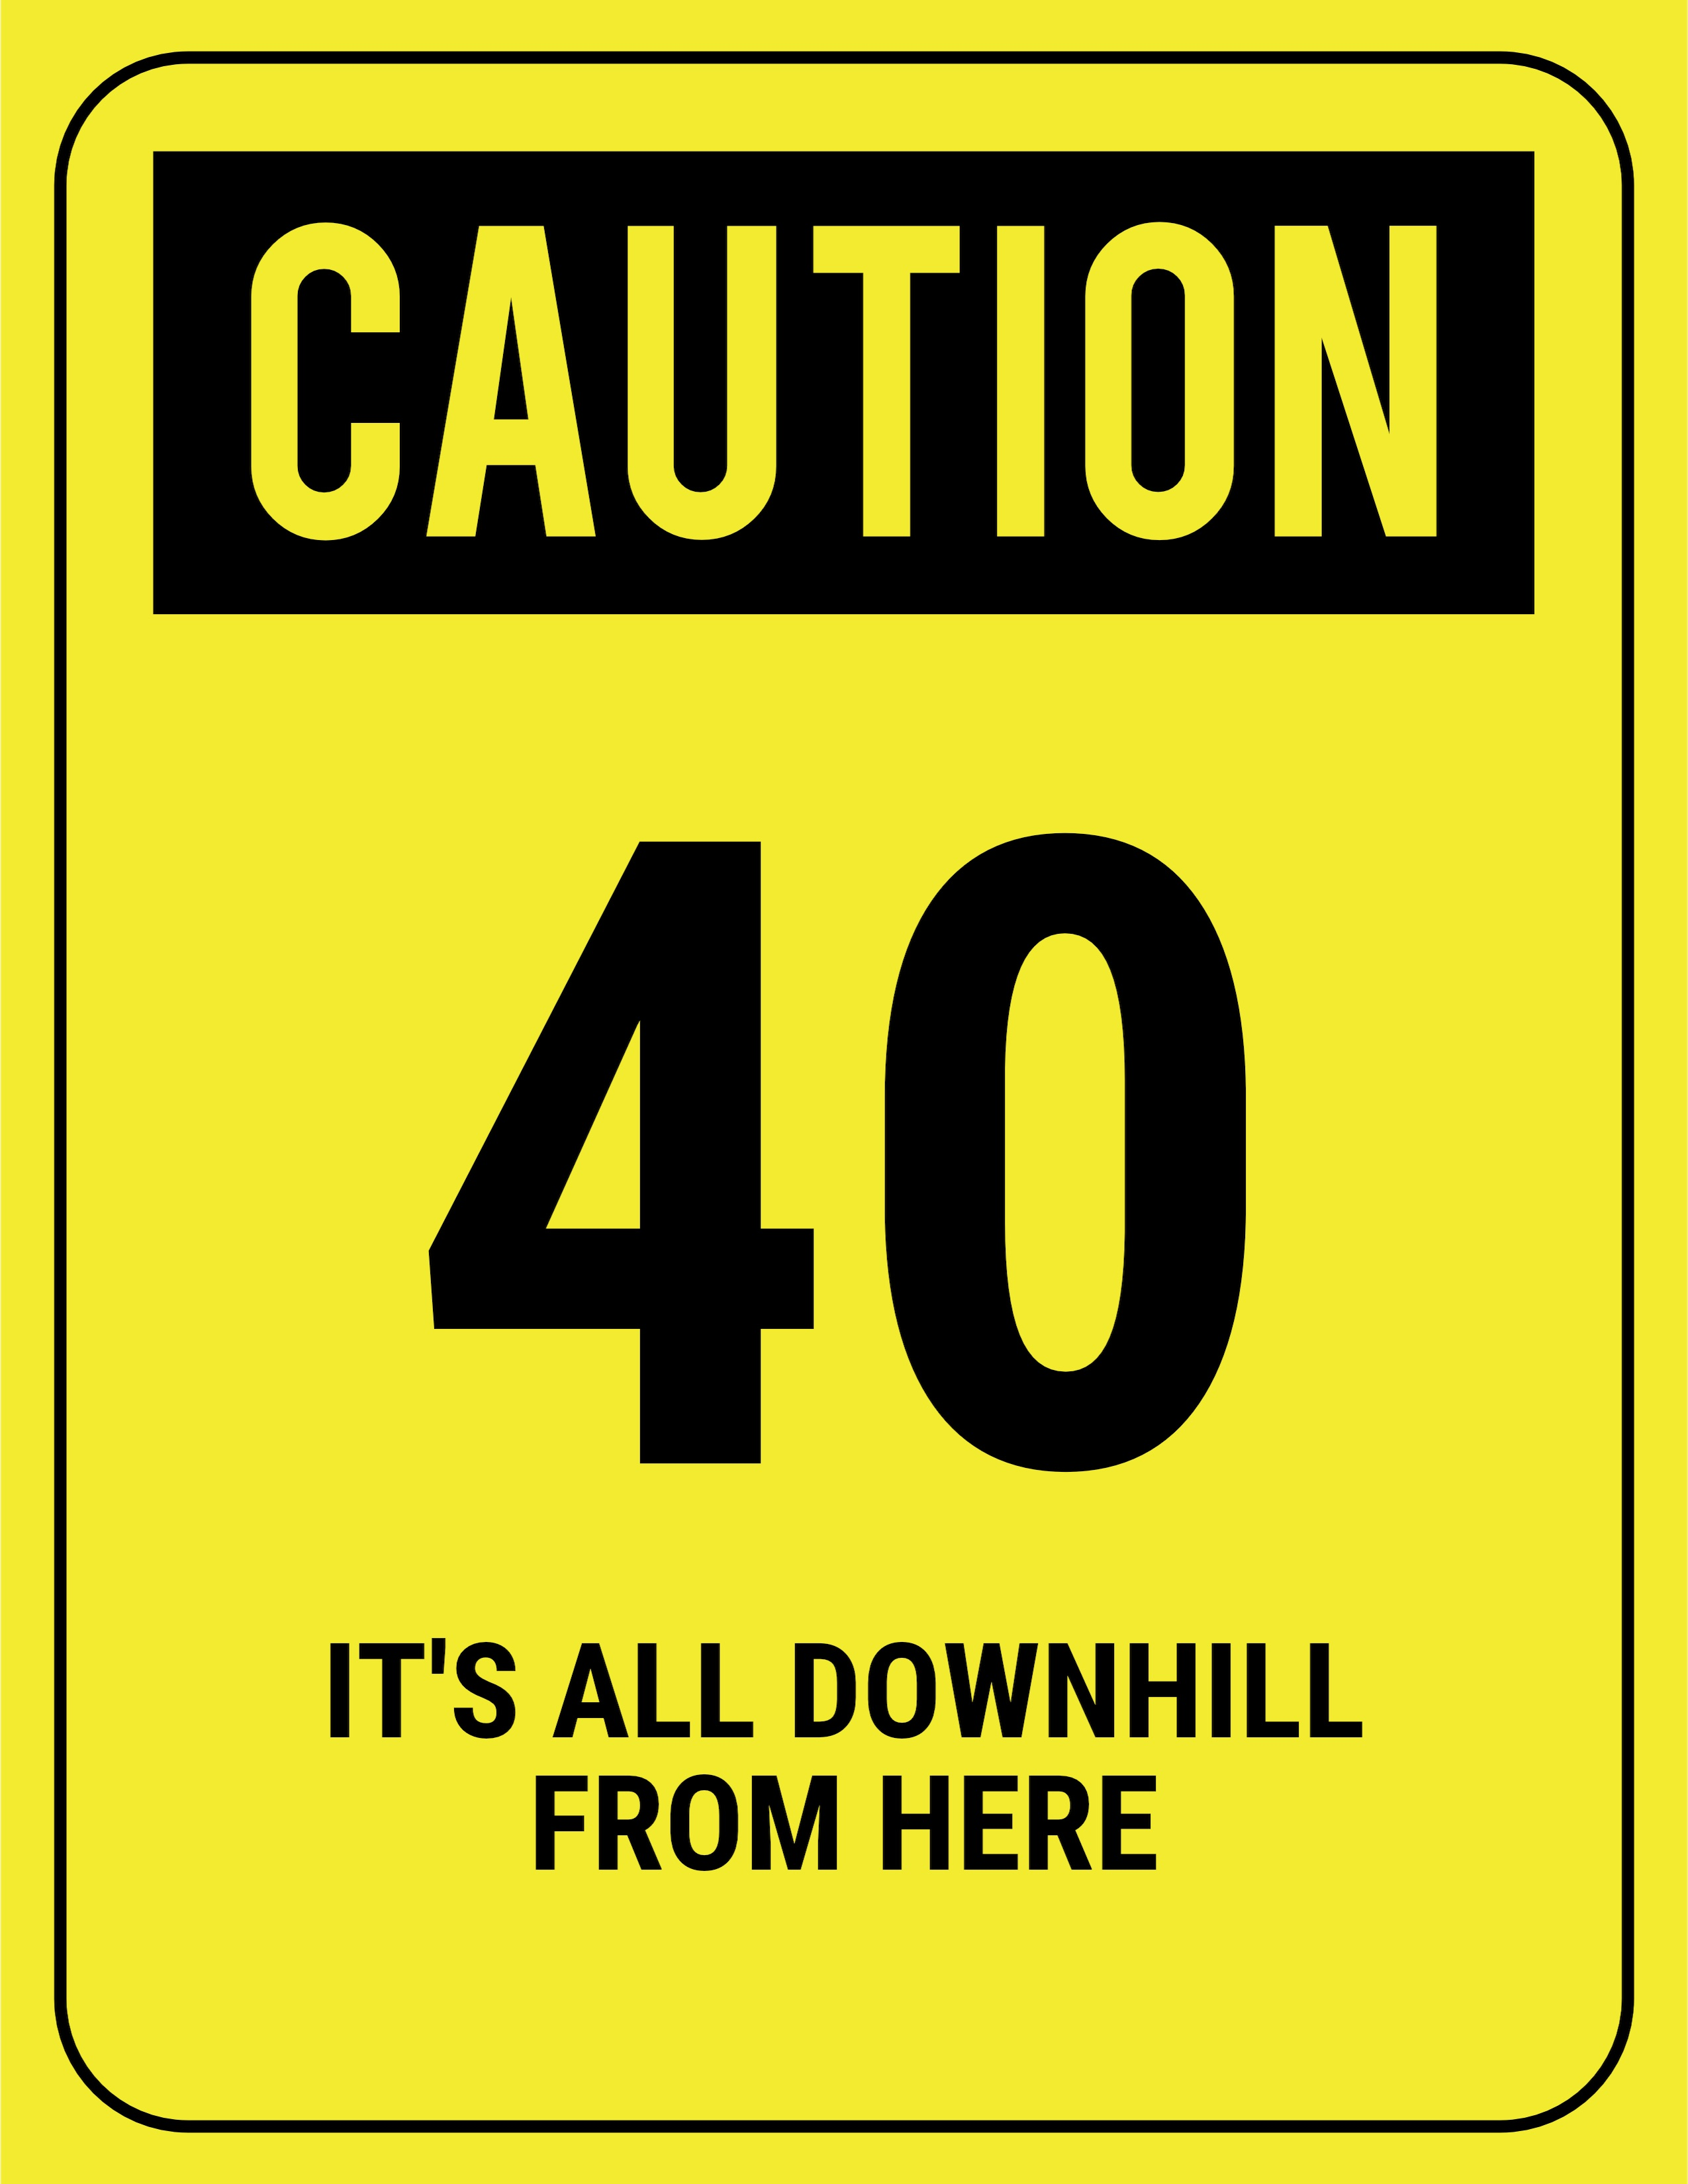 happy 40th birthday printable signs ; funny-safety-sign-caution-40-downhill-2550x3300